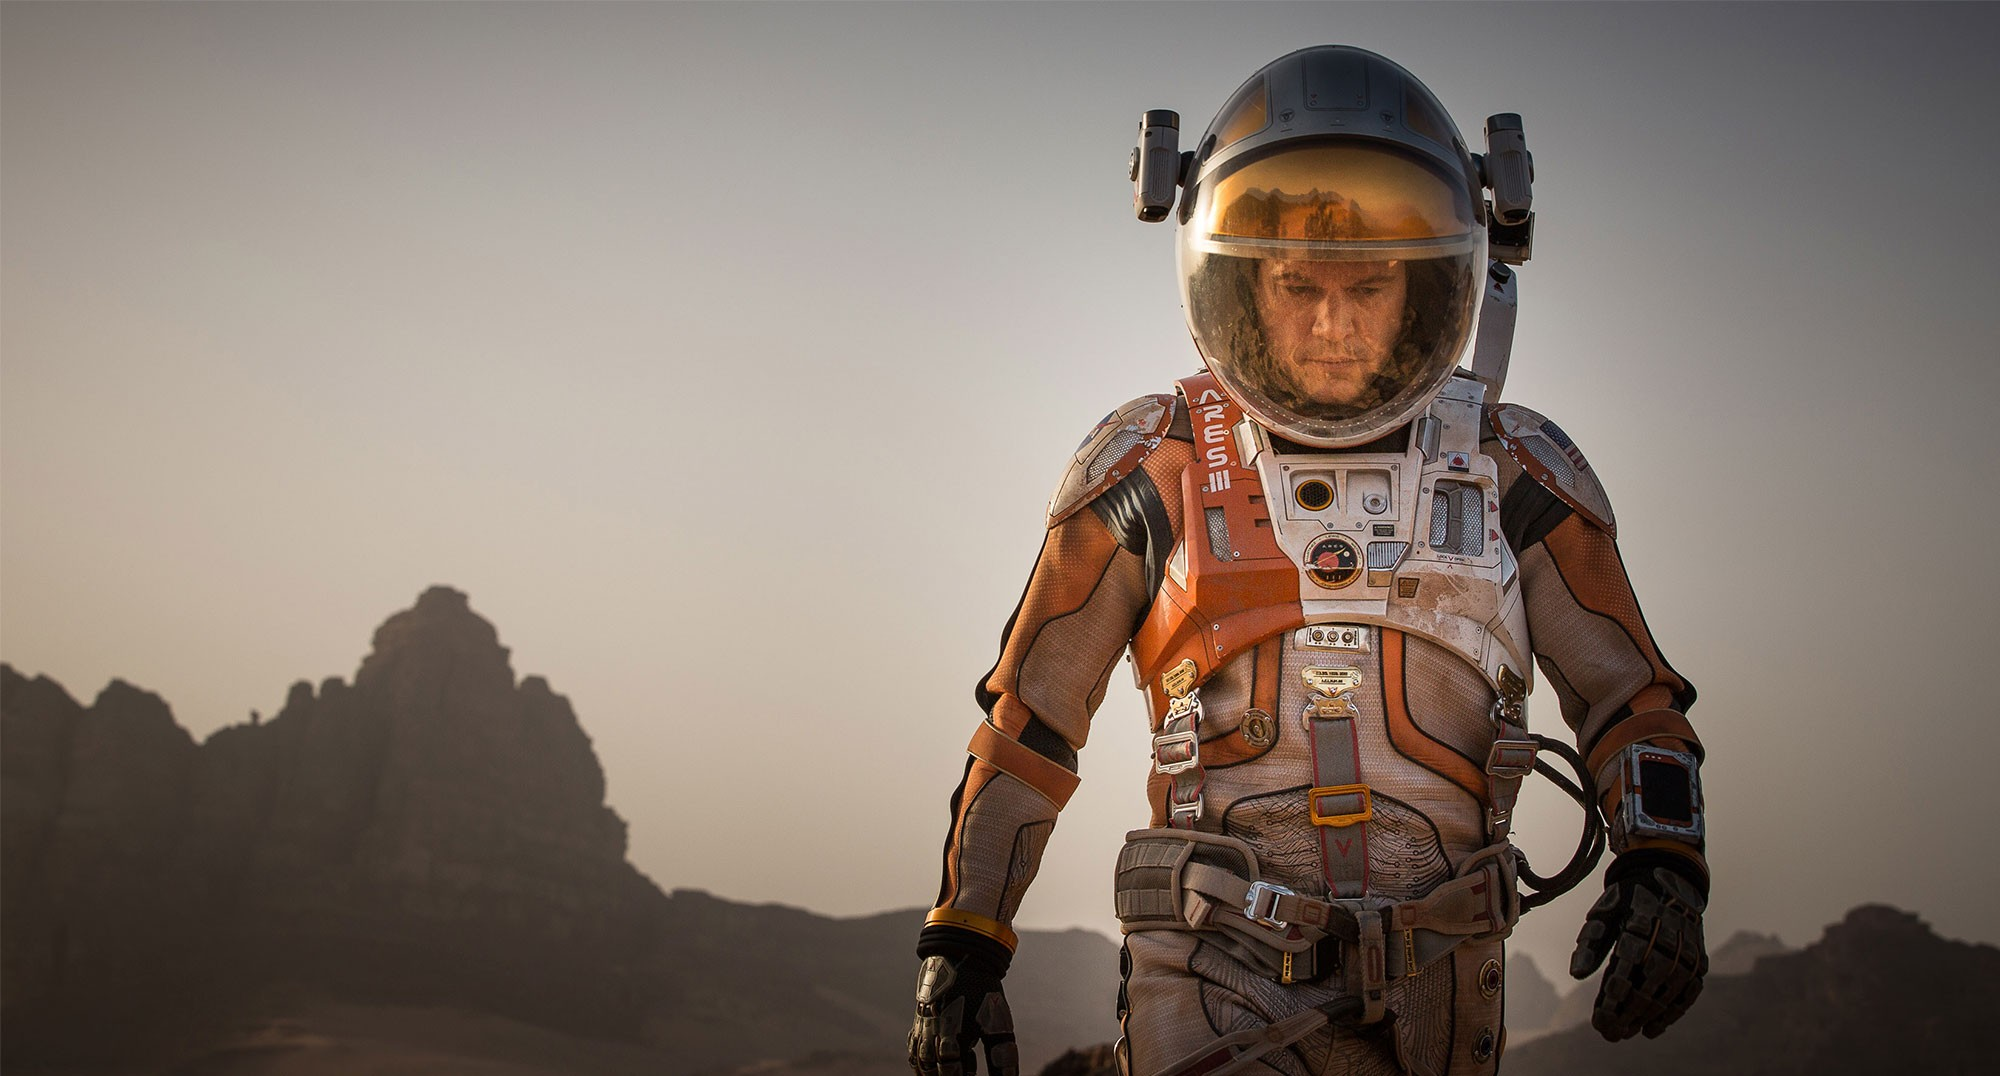 A scene from the feature film, The Martian.